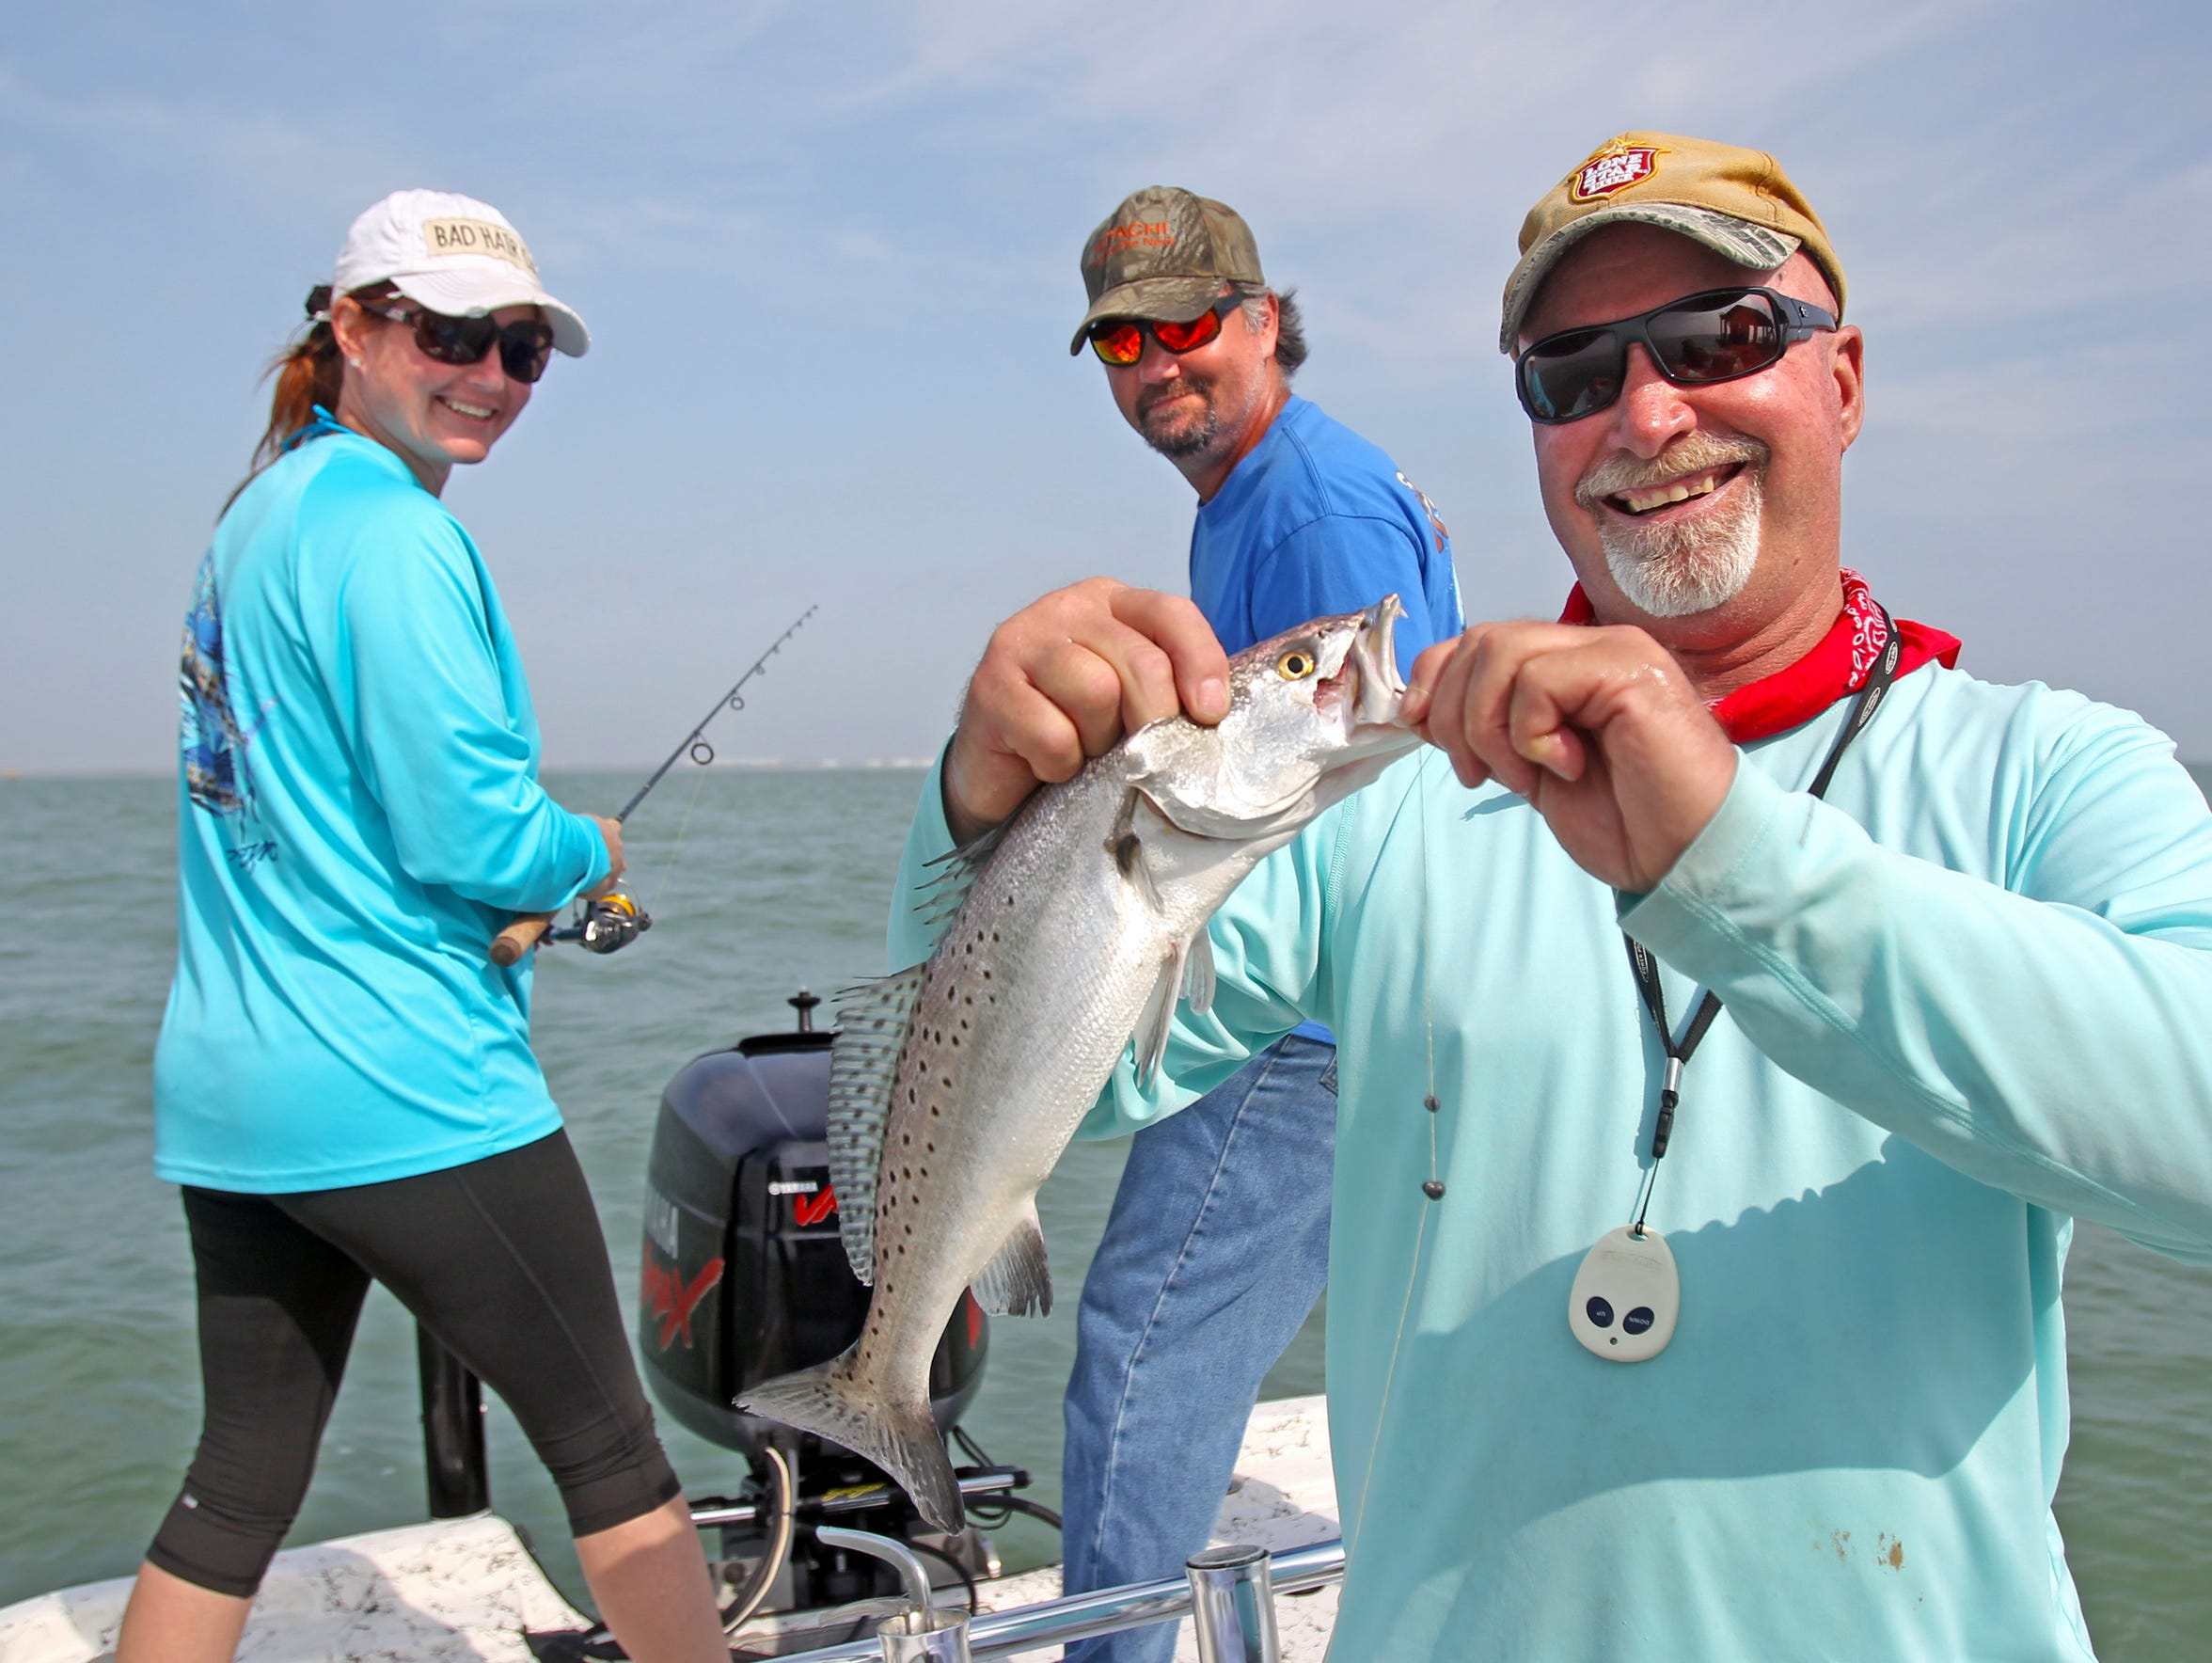 Guide Gordon Taylor provided a free thank-you fishing